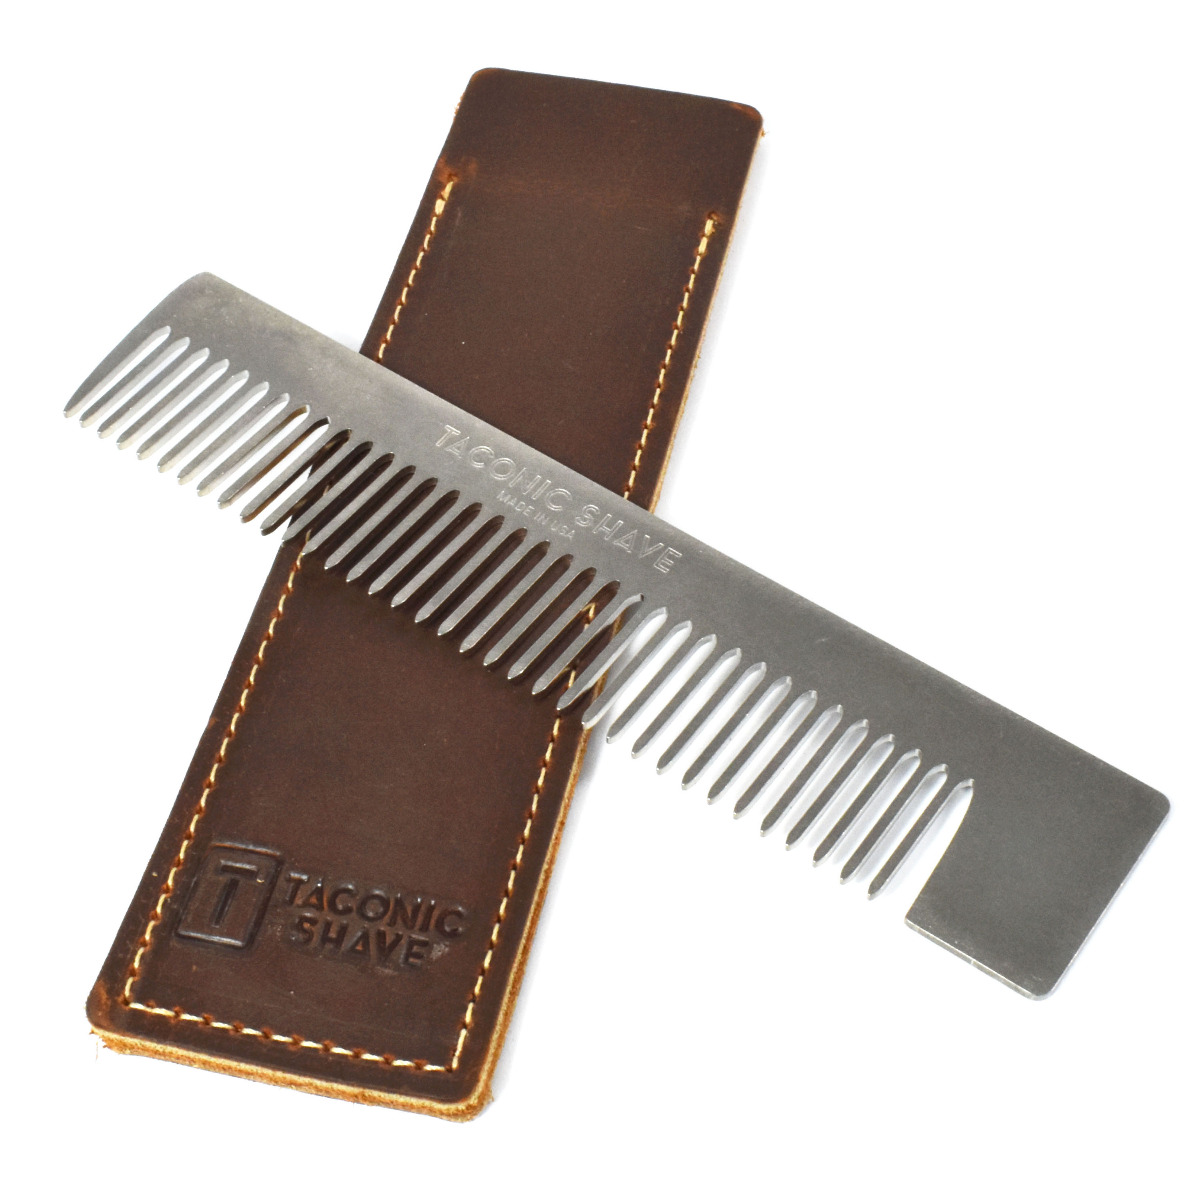 Taconic Shave Stainless Steel Pocket Comb and Leather Case